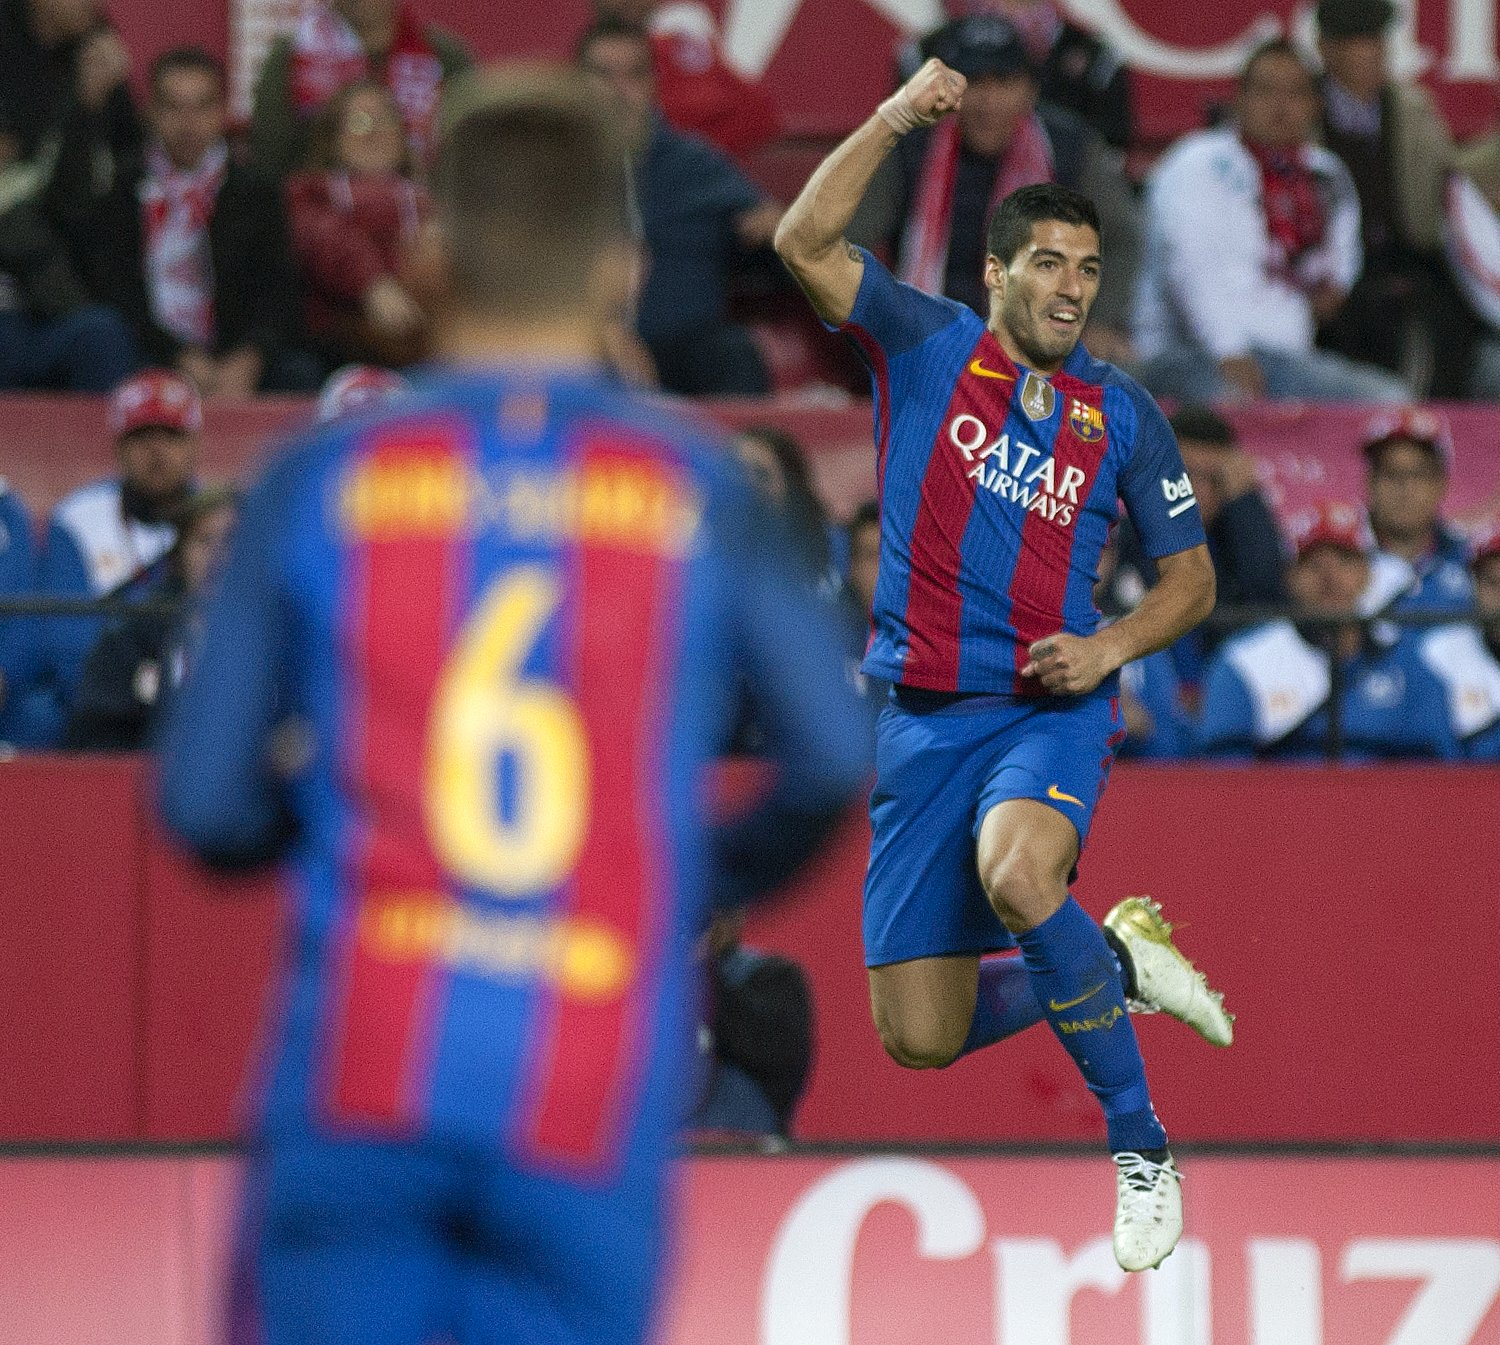 La liga table 2016 sunday 39 s week 11 results and updated standings bleacher report - Villarreal fc league table ...